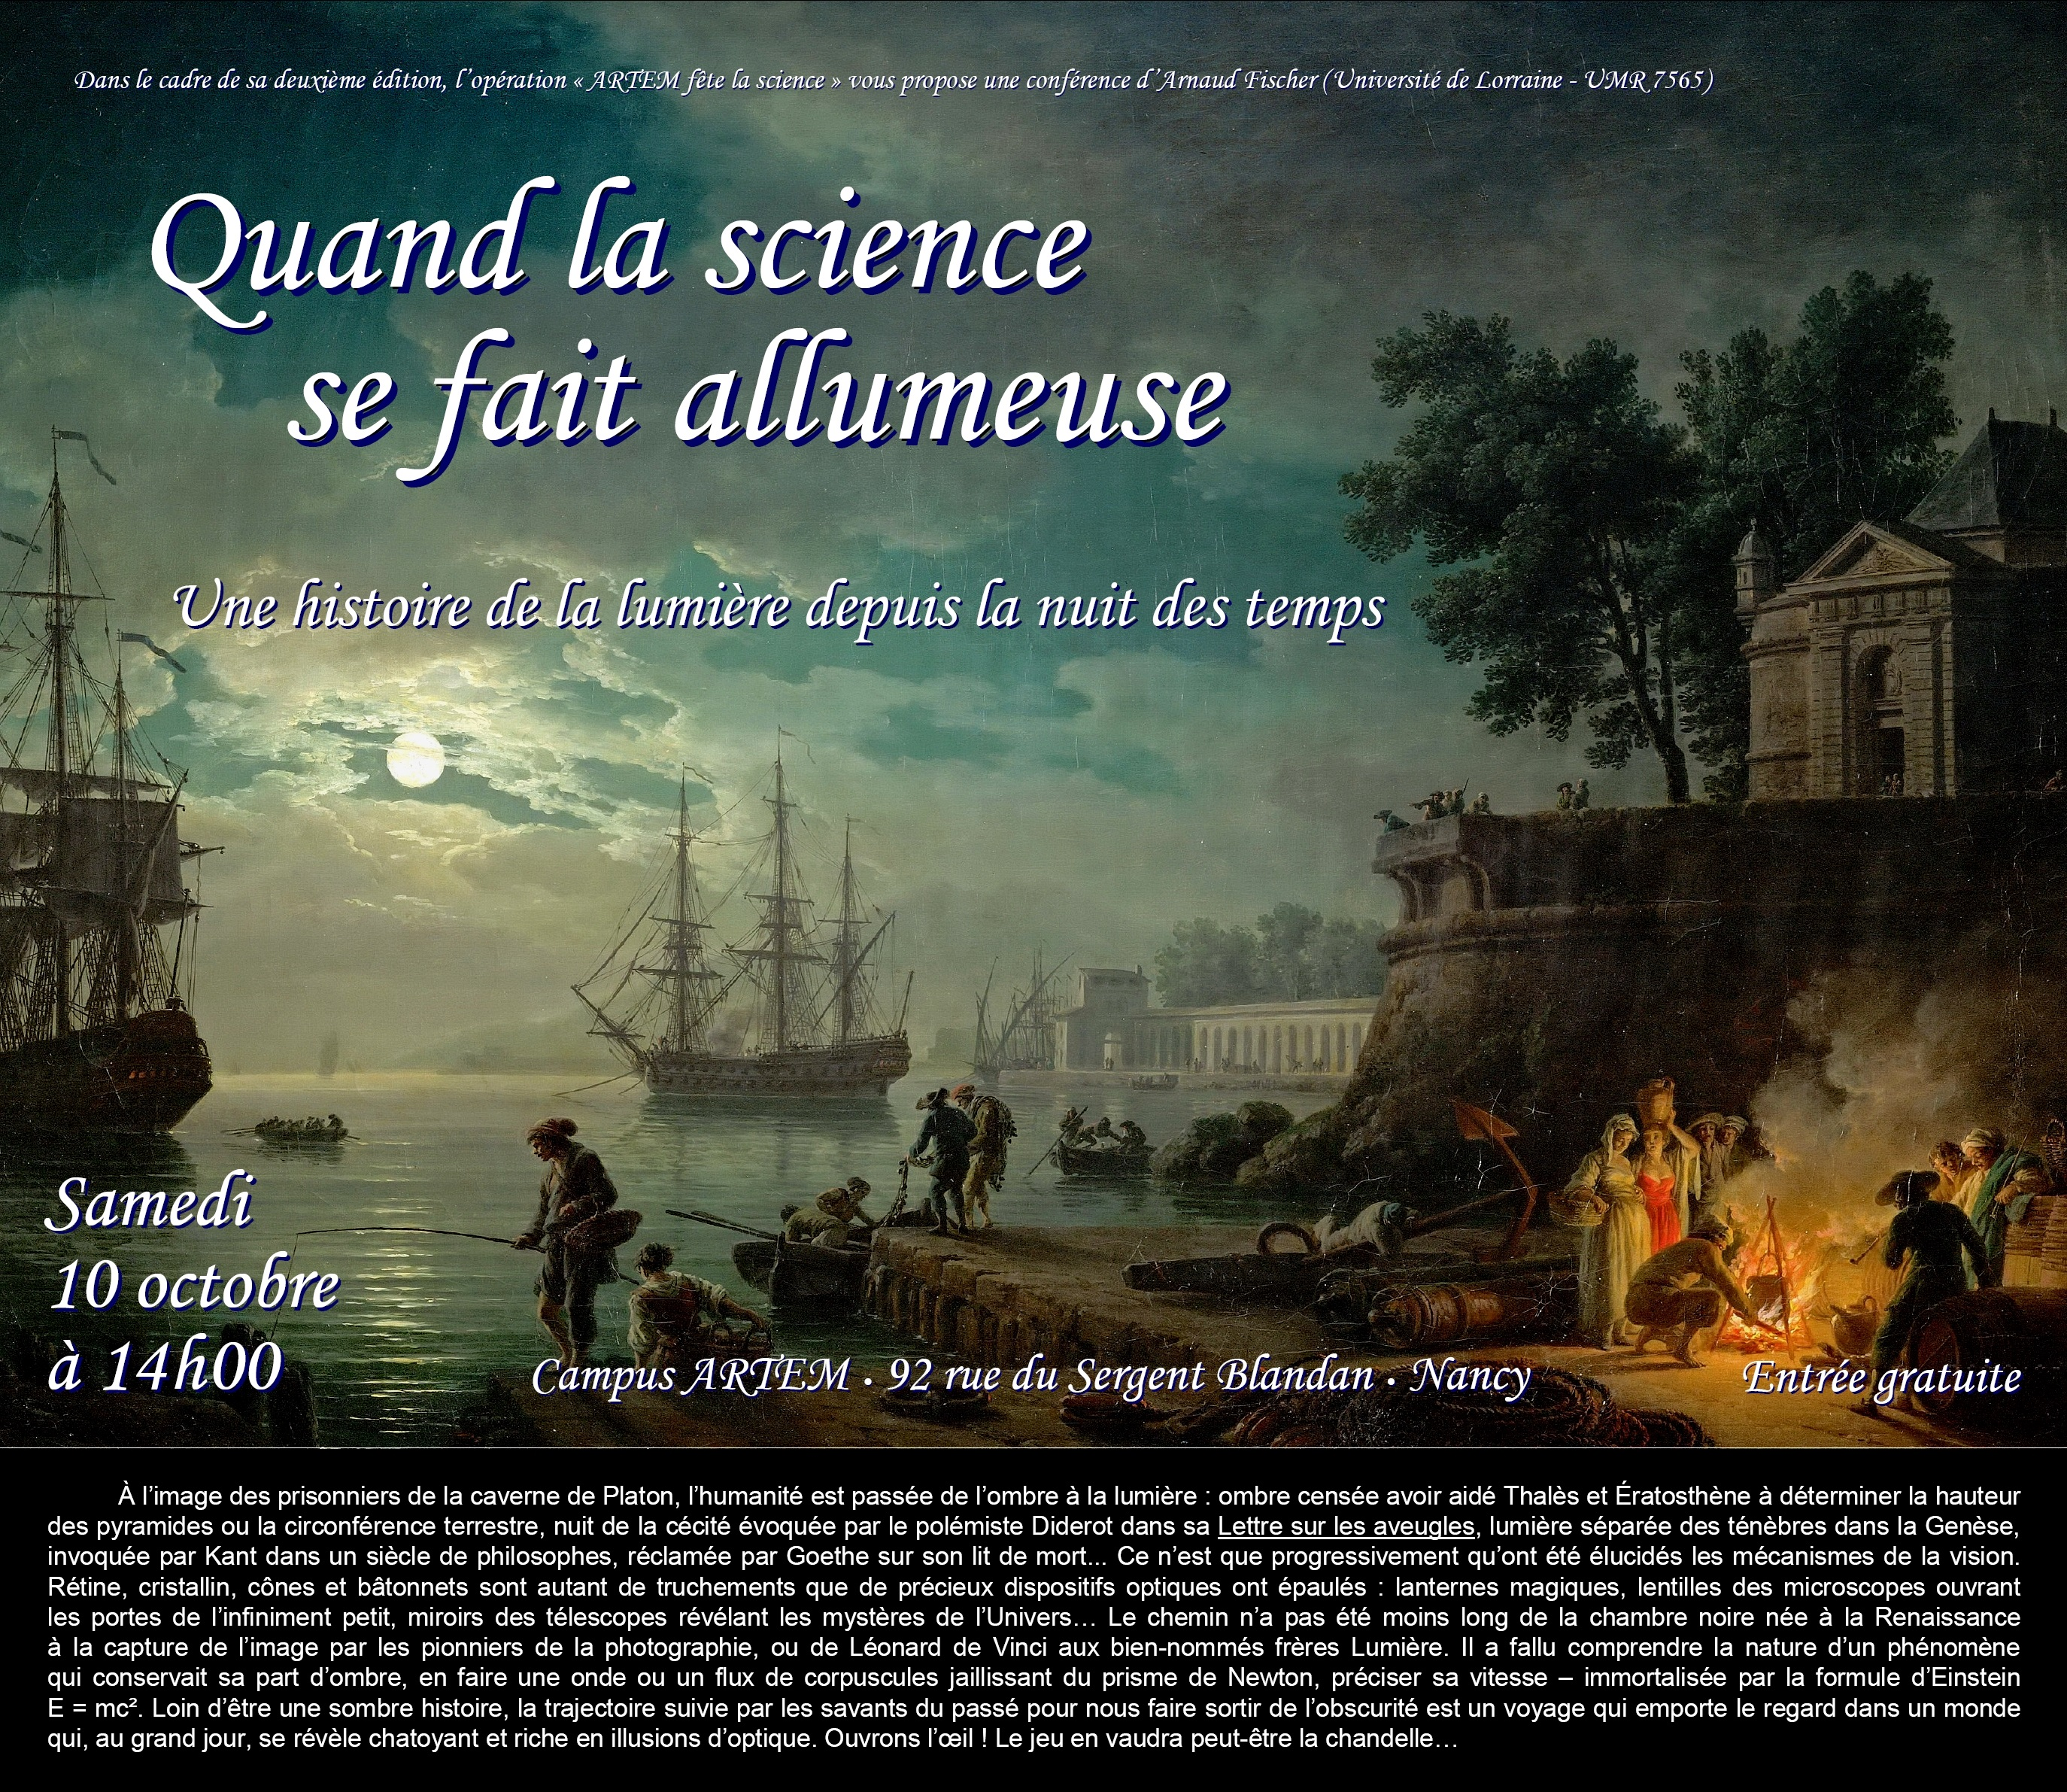 http://ticri.univ-lorraine.fr/wicri.pool/images//a/ac/Affiche_et_resume_Conference_Science_allumeuse_2015_Nancy.jpg